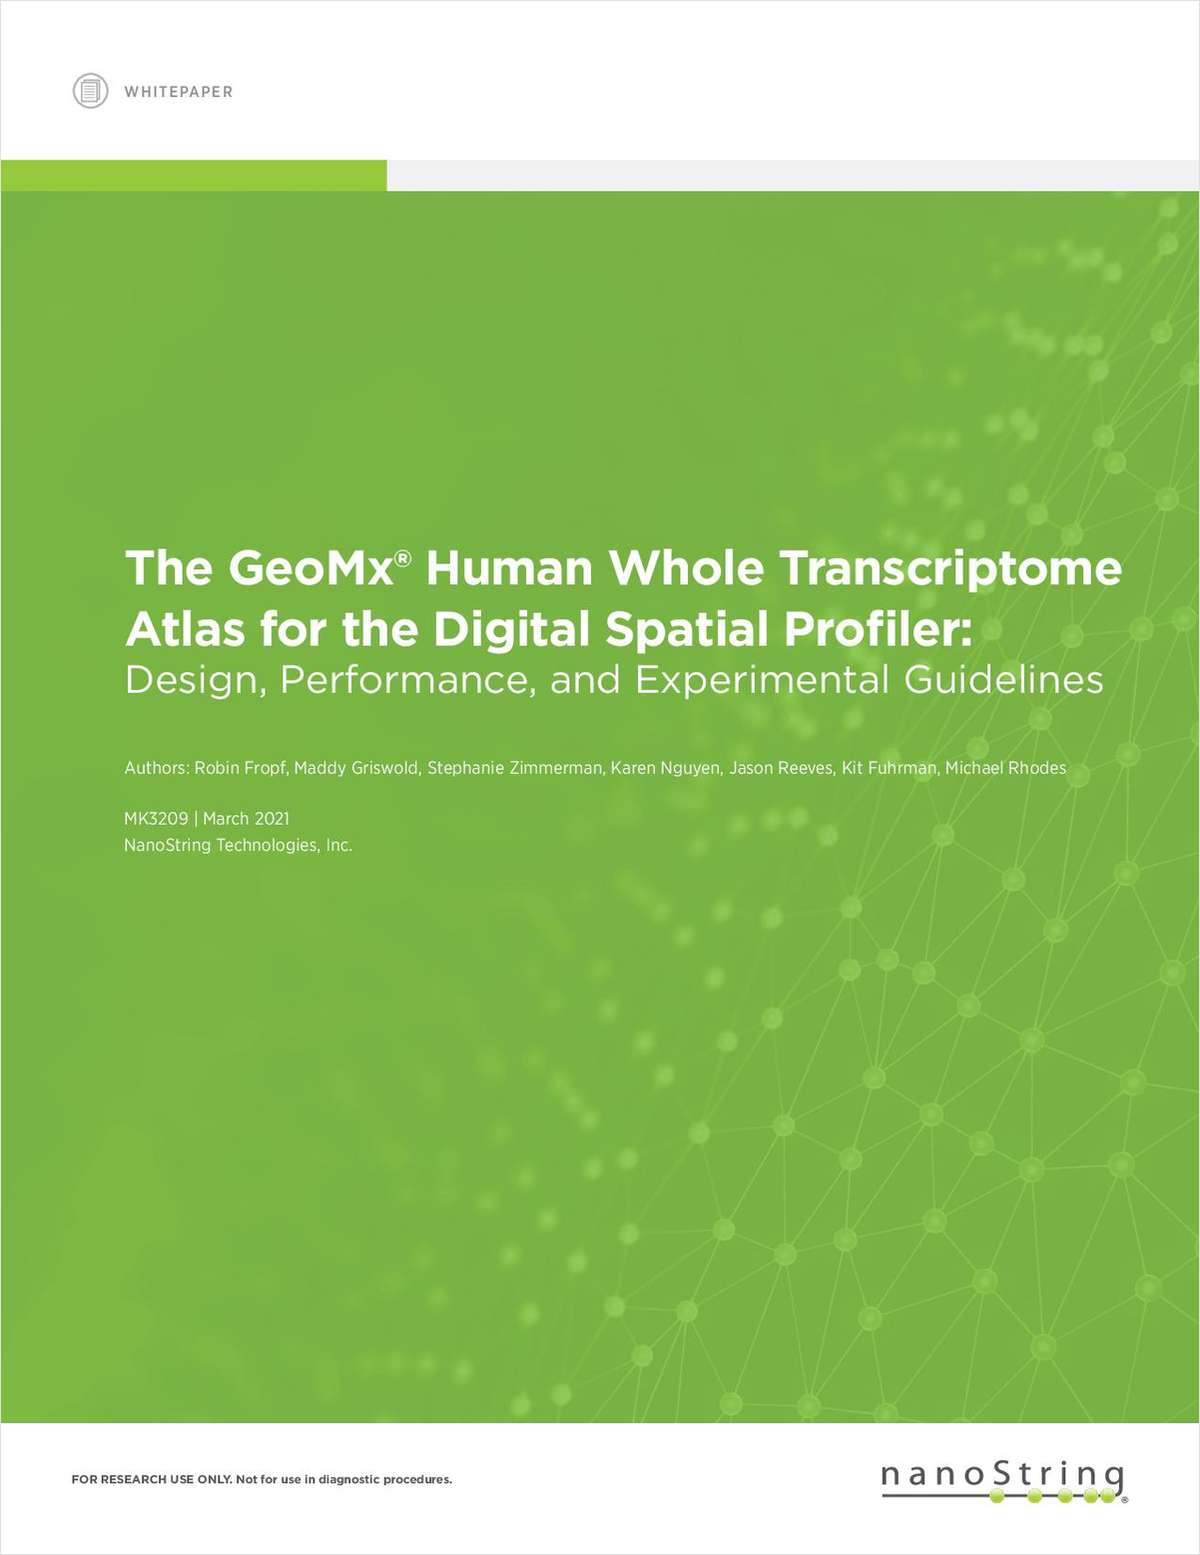 The GeoMx Human Whole Transcriptome Atlas for the Digital Spatial Profiler: Design, Performance, and Experimental Guidelines